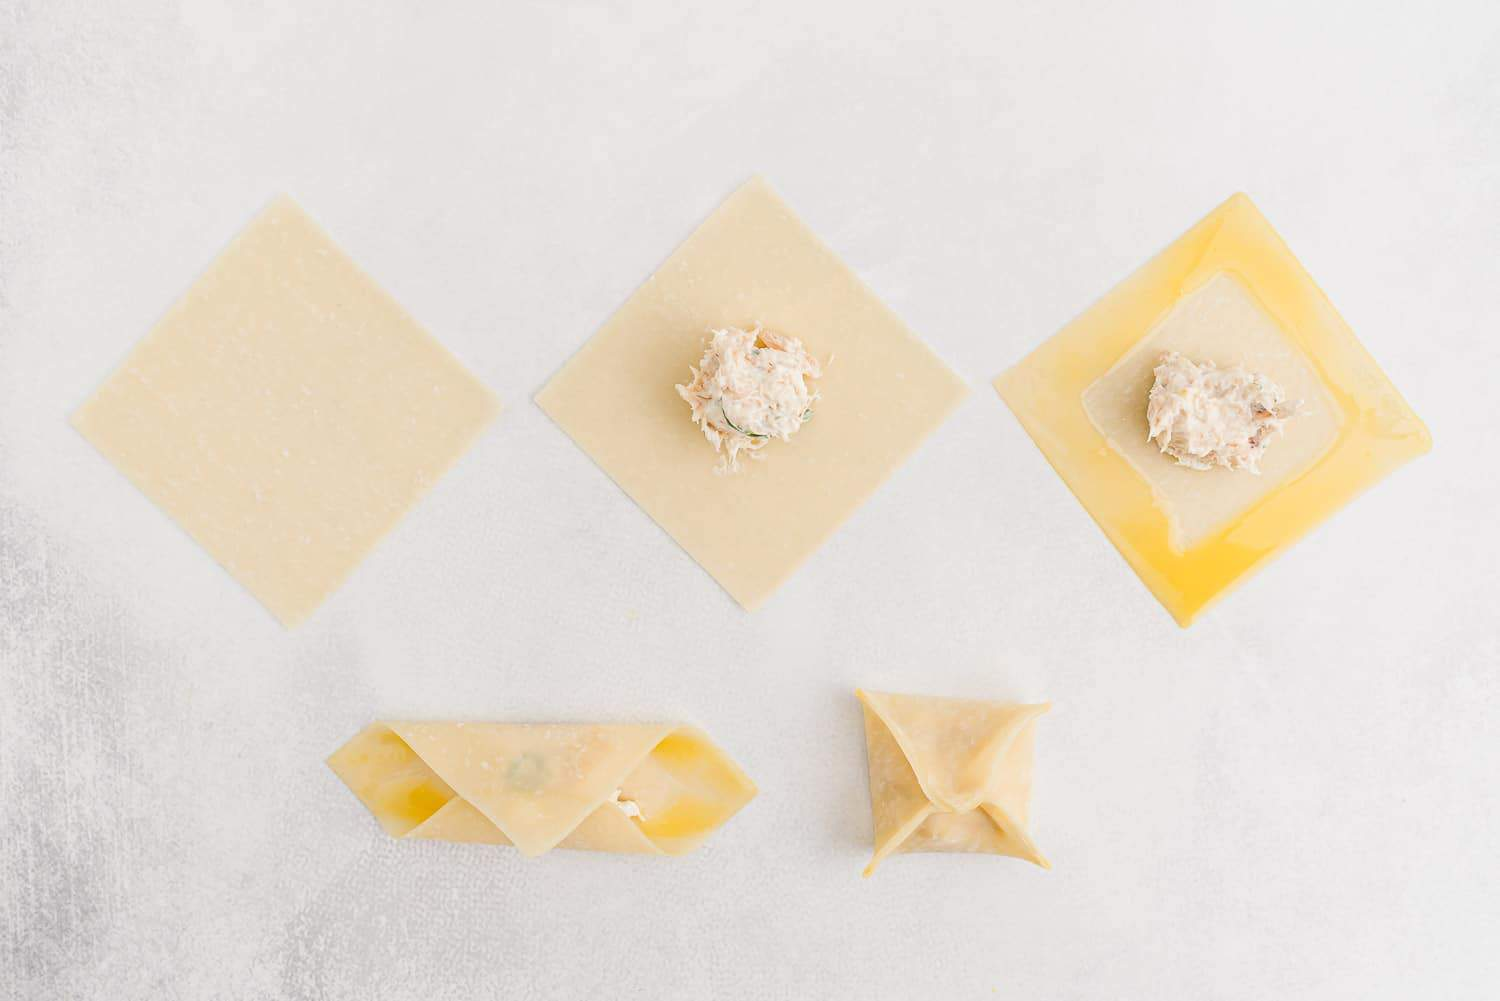 Step by step of how to fold a rangoon.